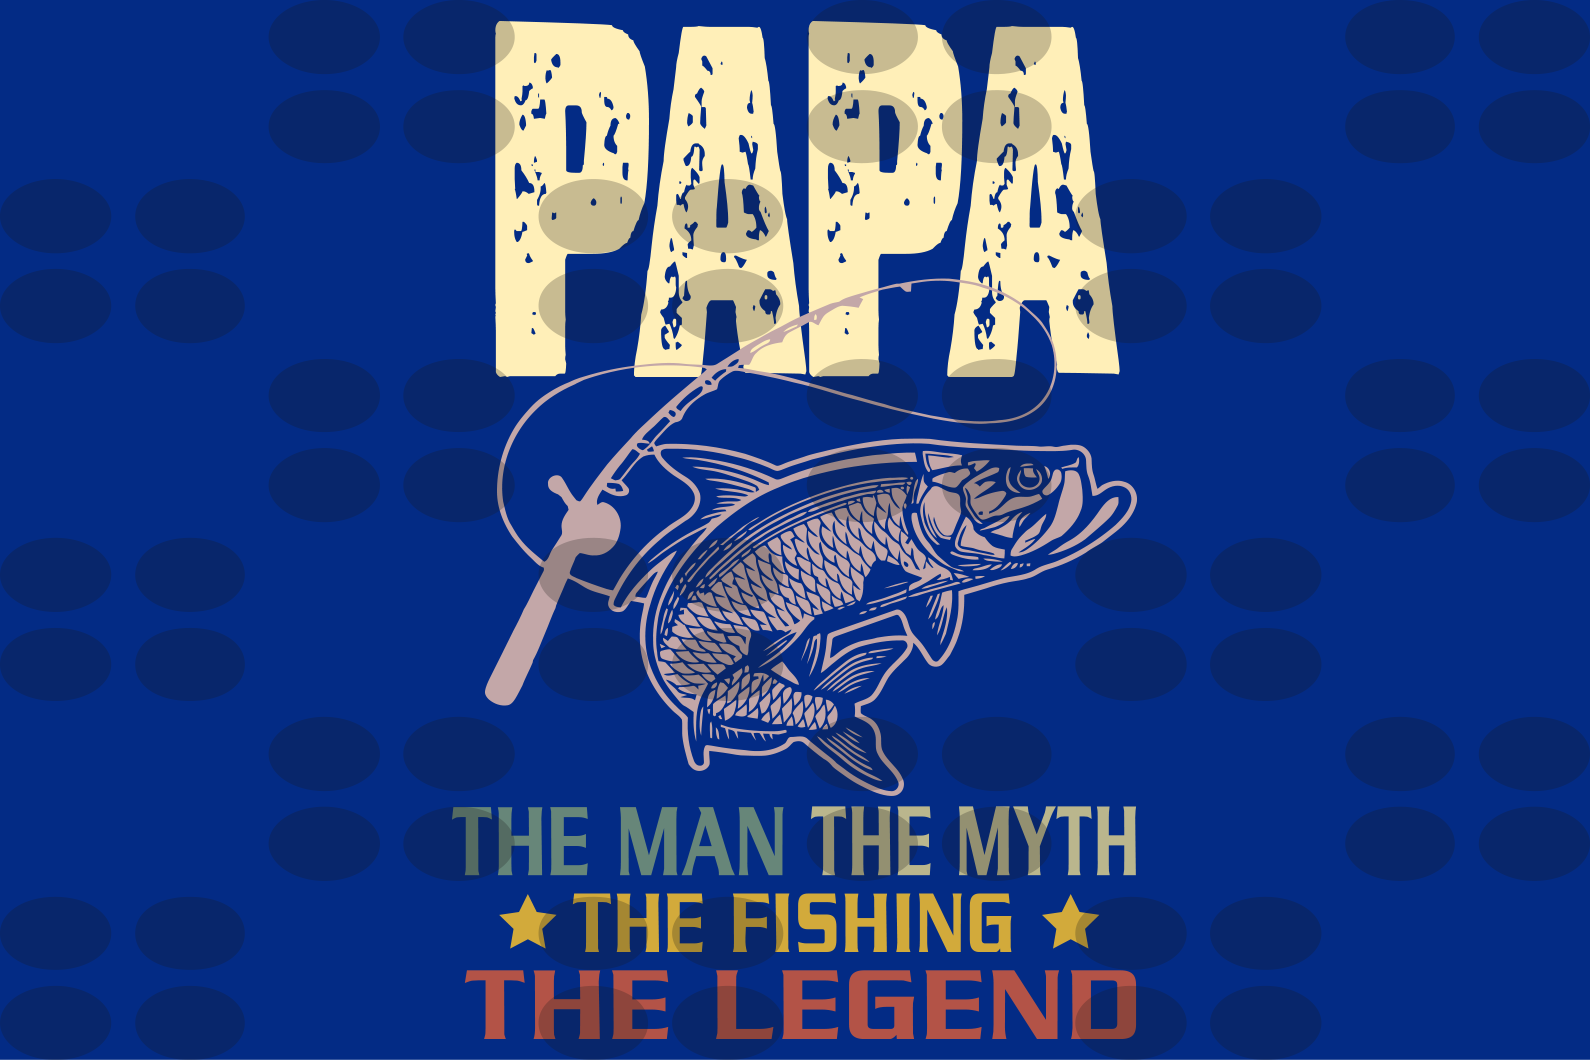 Papa The man the myth the legend,fathers day svg, fathers day gift,happy fathers day,father gift,fathers day shirt, gift for dad,happy fathers day gift,daddy svg,love dad